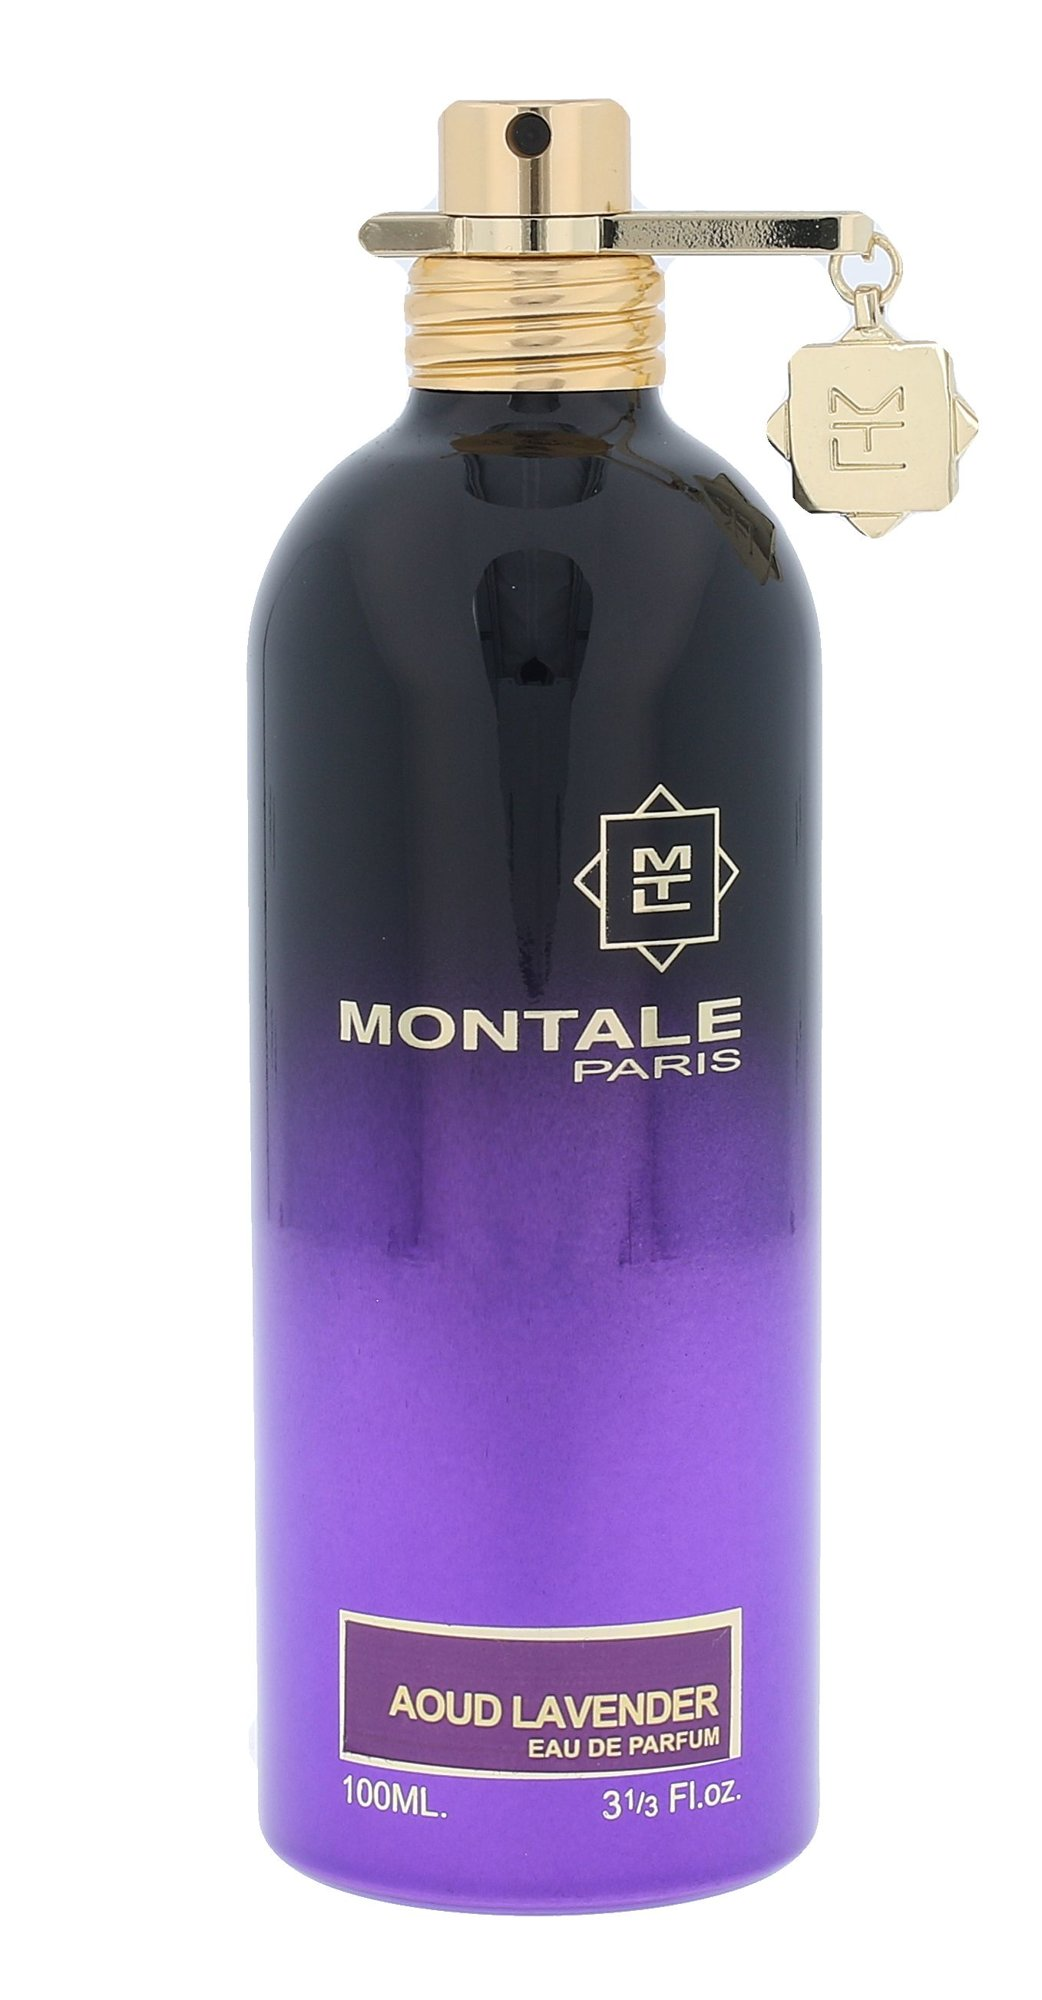 Montale Paris Aoud Lavander EDP 100ml